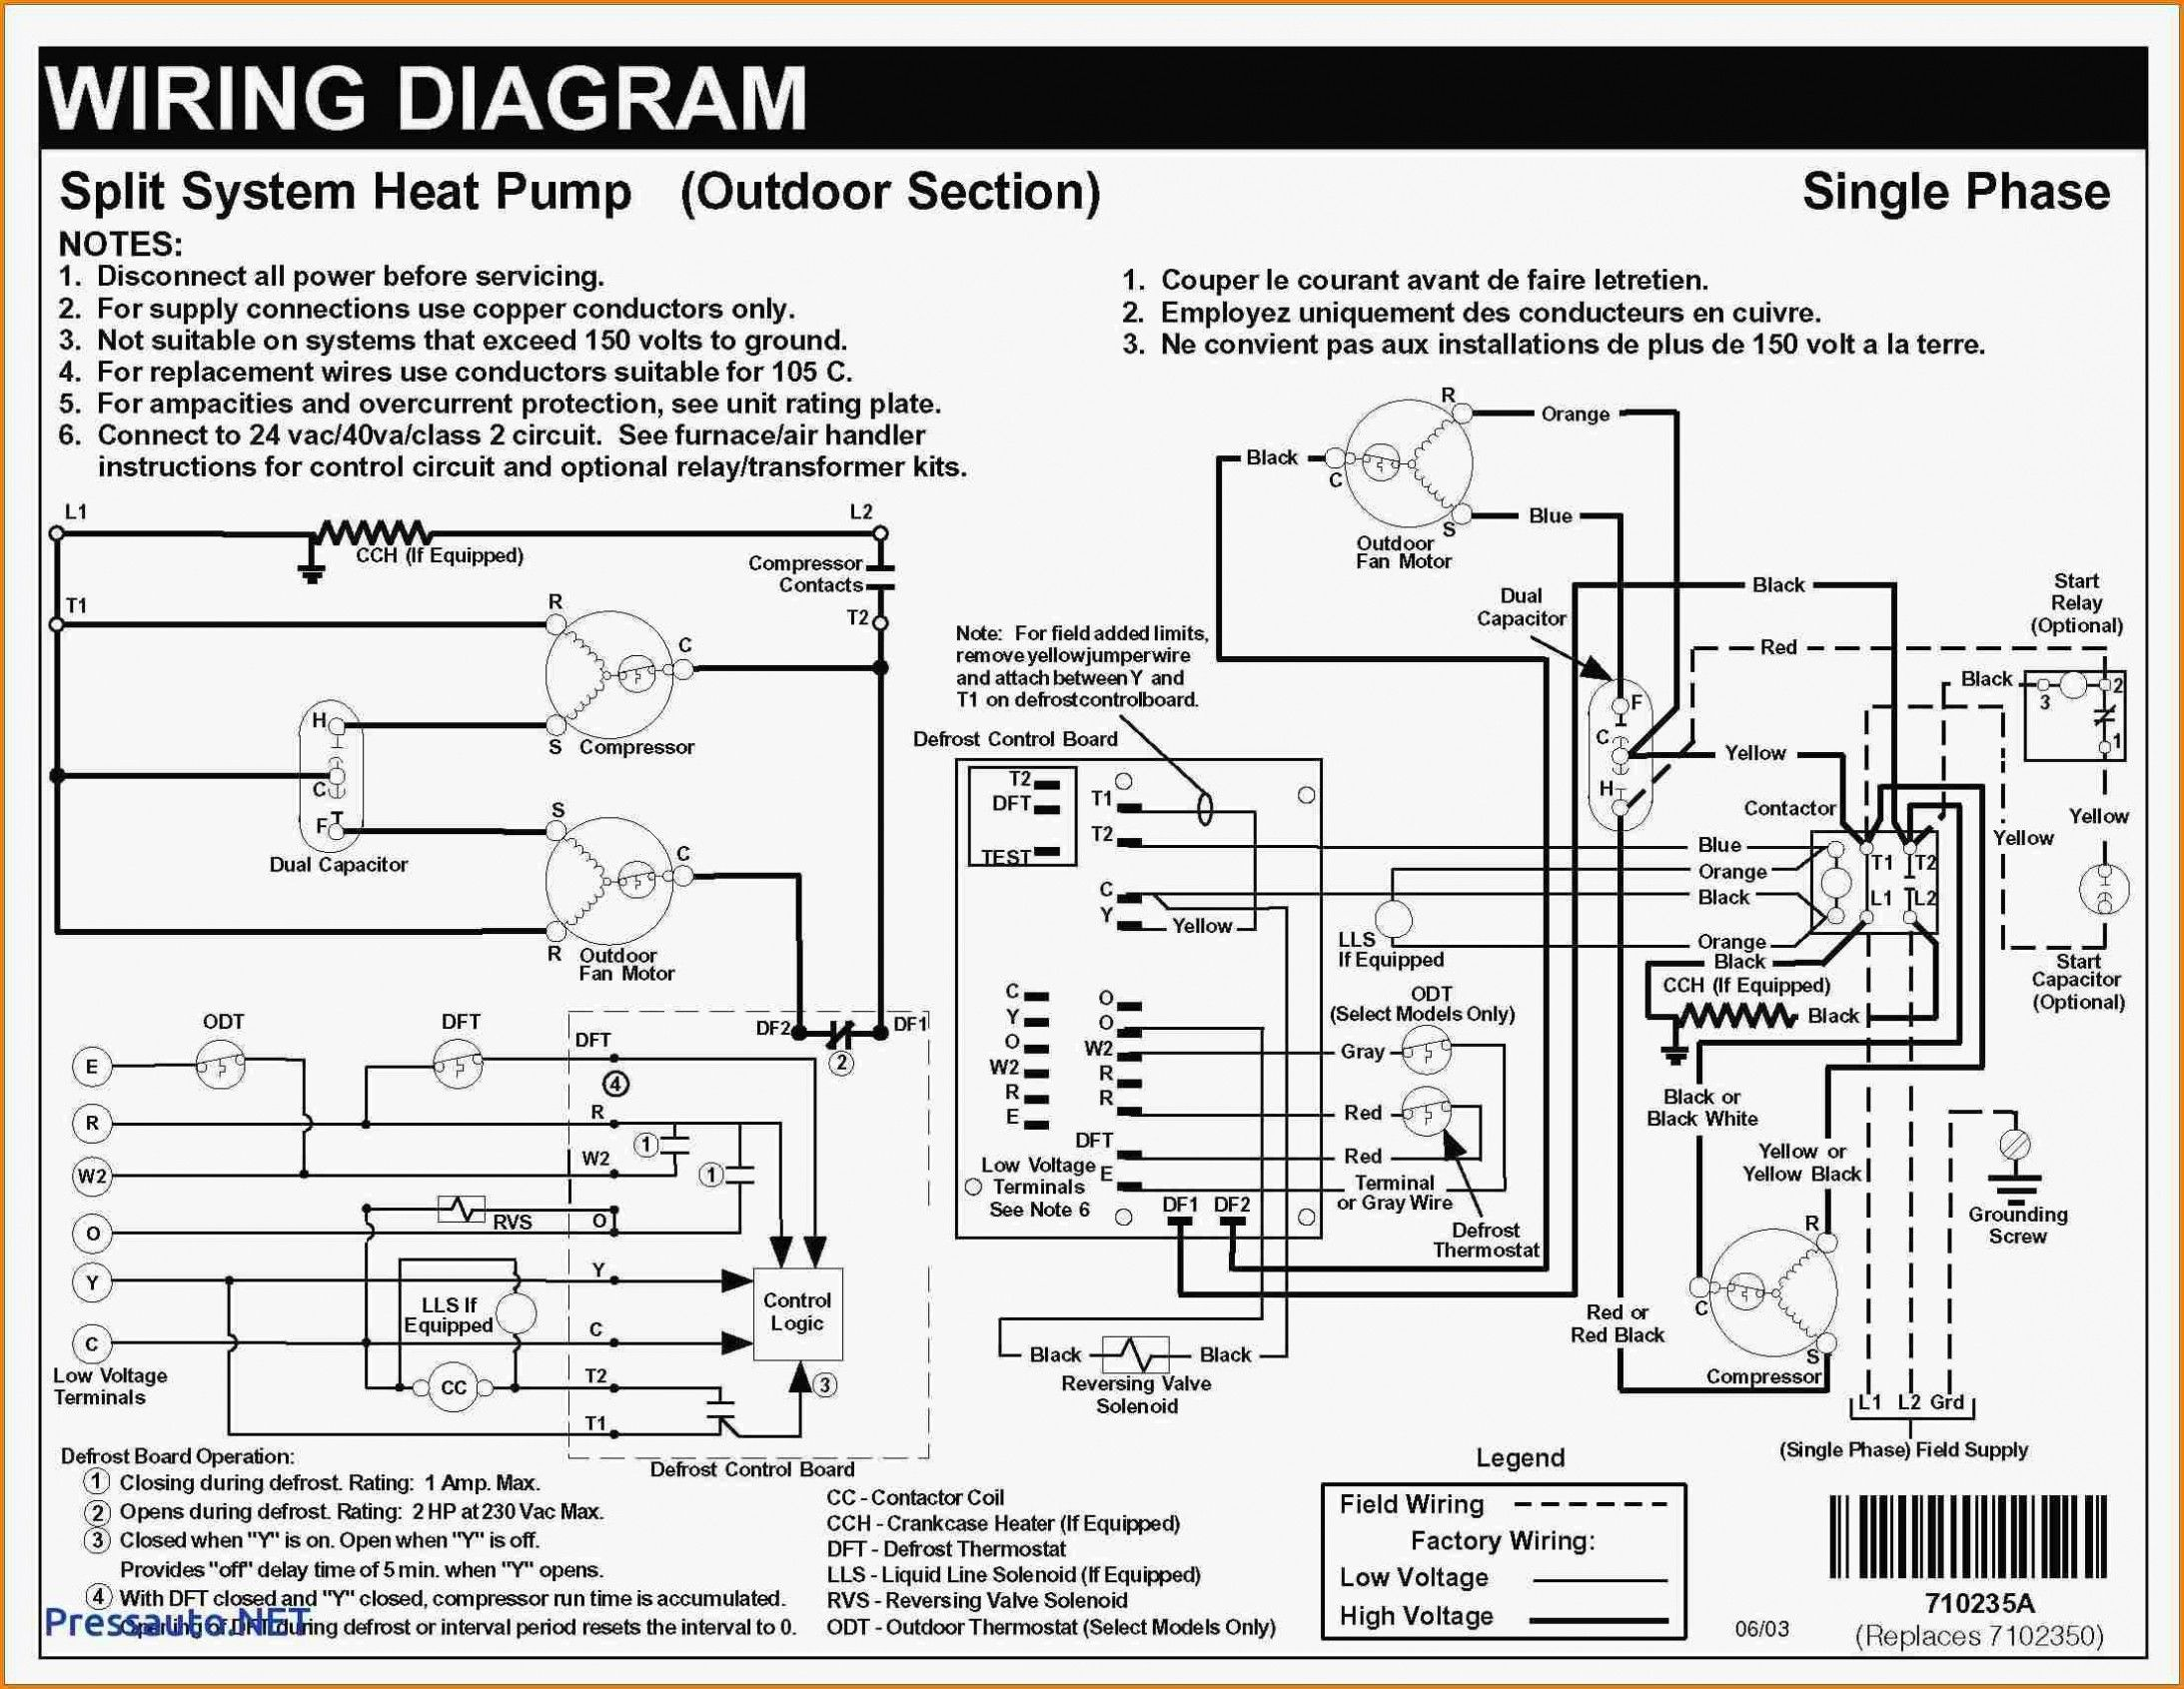 Unique Wiring Diagram For American Standard Gas Furnace Diagram Diagramsample Diagramtemplate Wiringdiagram Diagr Thermostat Wiring House Wiring Heat Pump